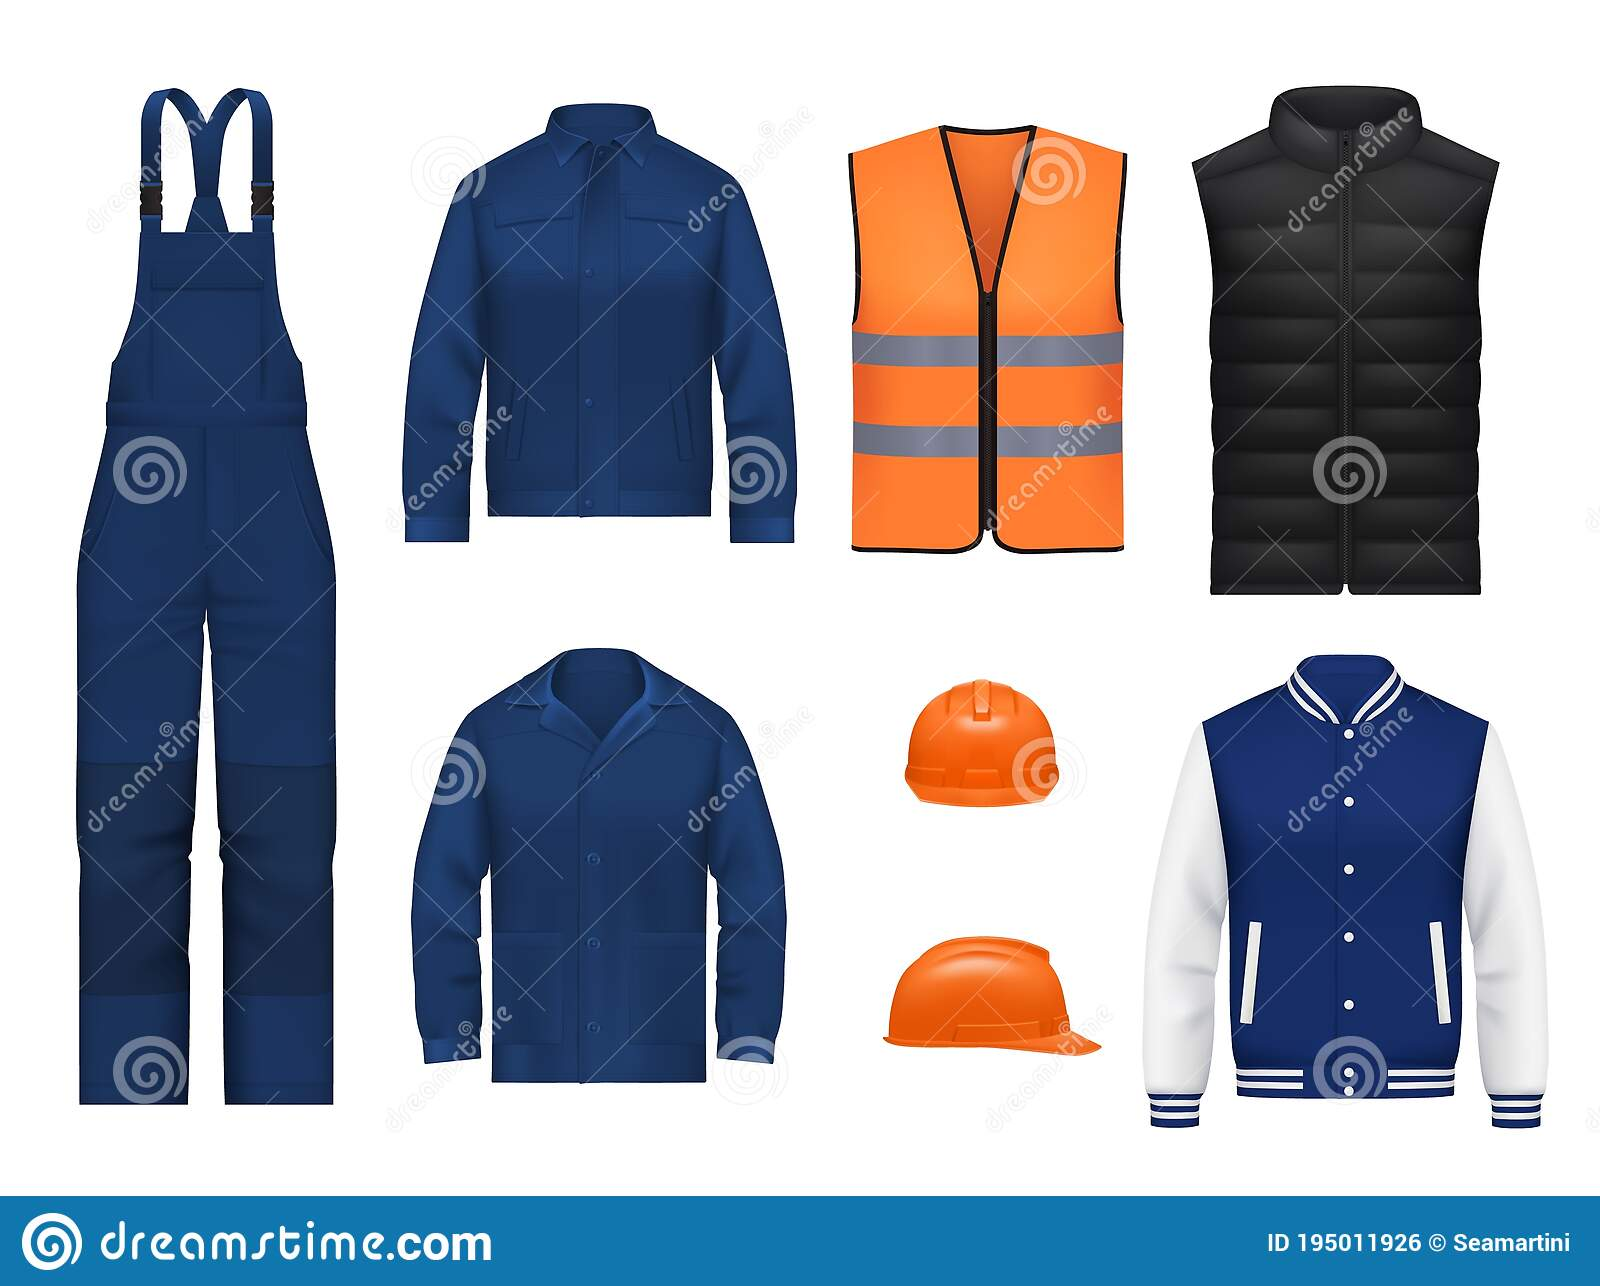 Psd mockup id 57159 in apparel mockups 9. Workwear Uniform And Worker Clothesg Realistic Stock Vector Illustration Of Professional Mechanic 195011926